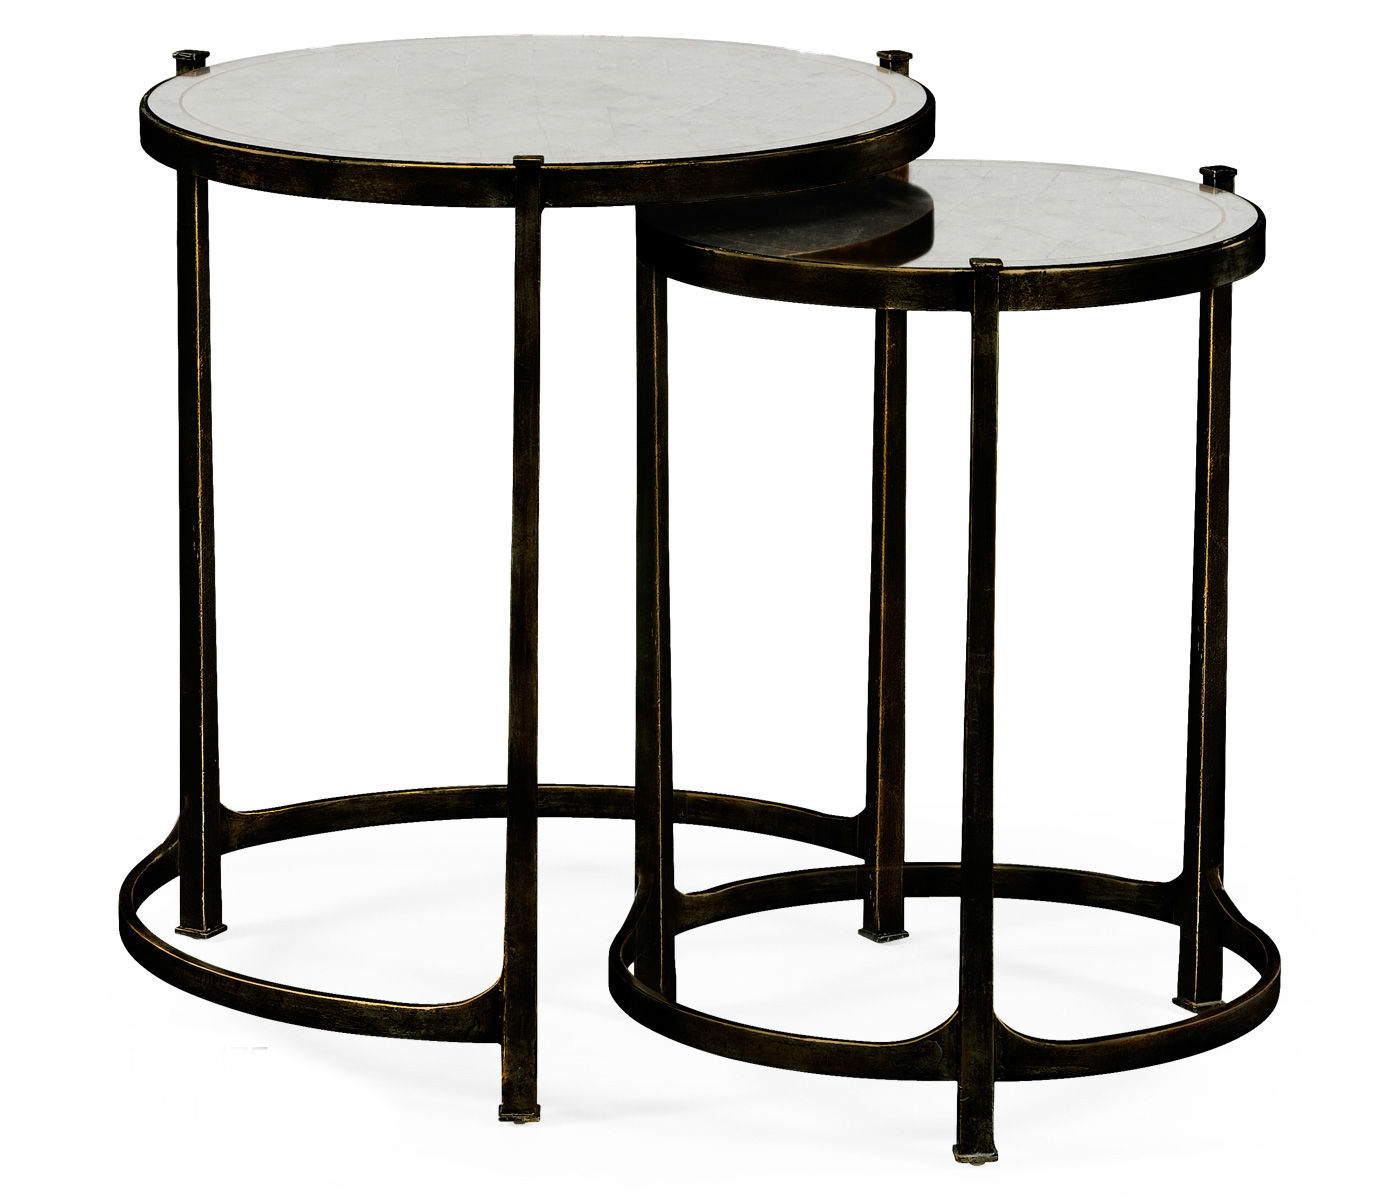 nesting tables iron bronze side table metal accent elegant tall antiqued mirrored partner end console coffee available hospitality formal living room furniture hooker deck covers